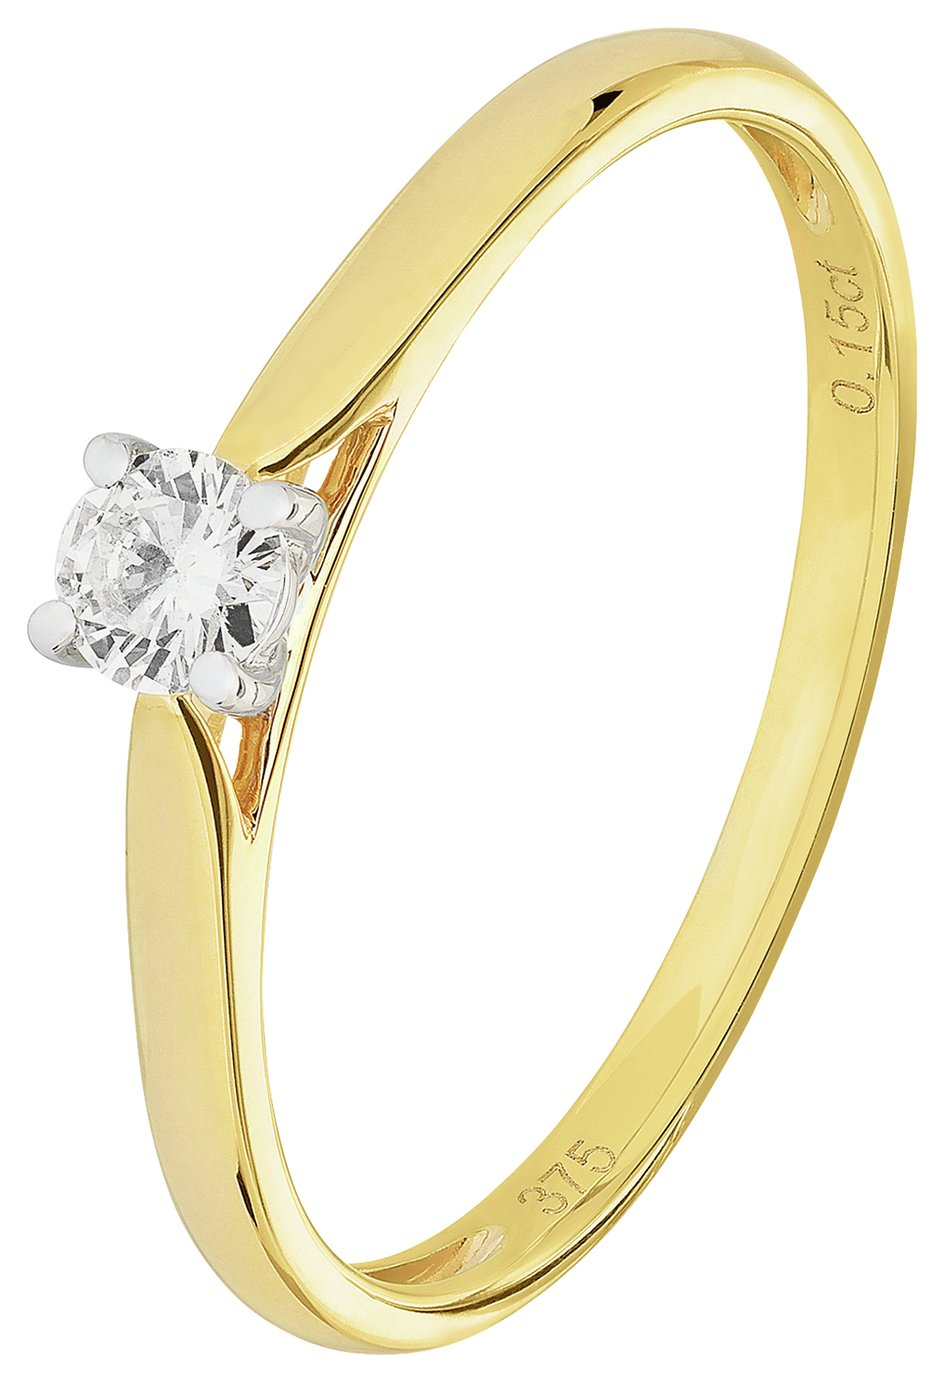 Revere 9ct Gold 0.15ct Diamond Solitaire Ring - N